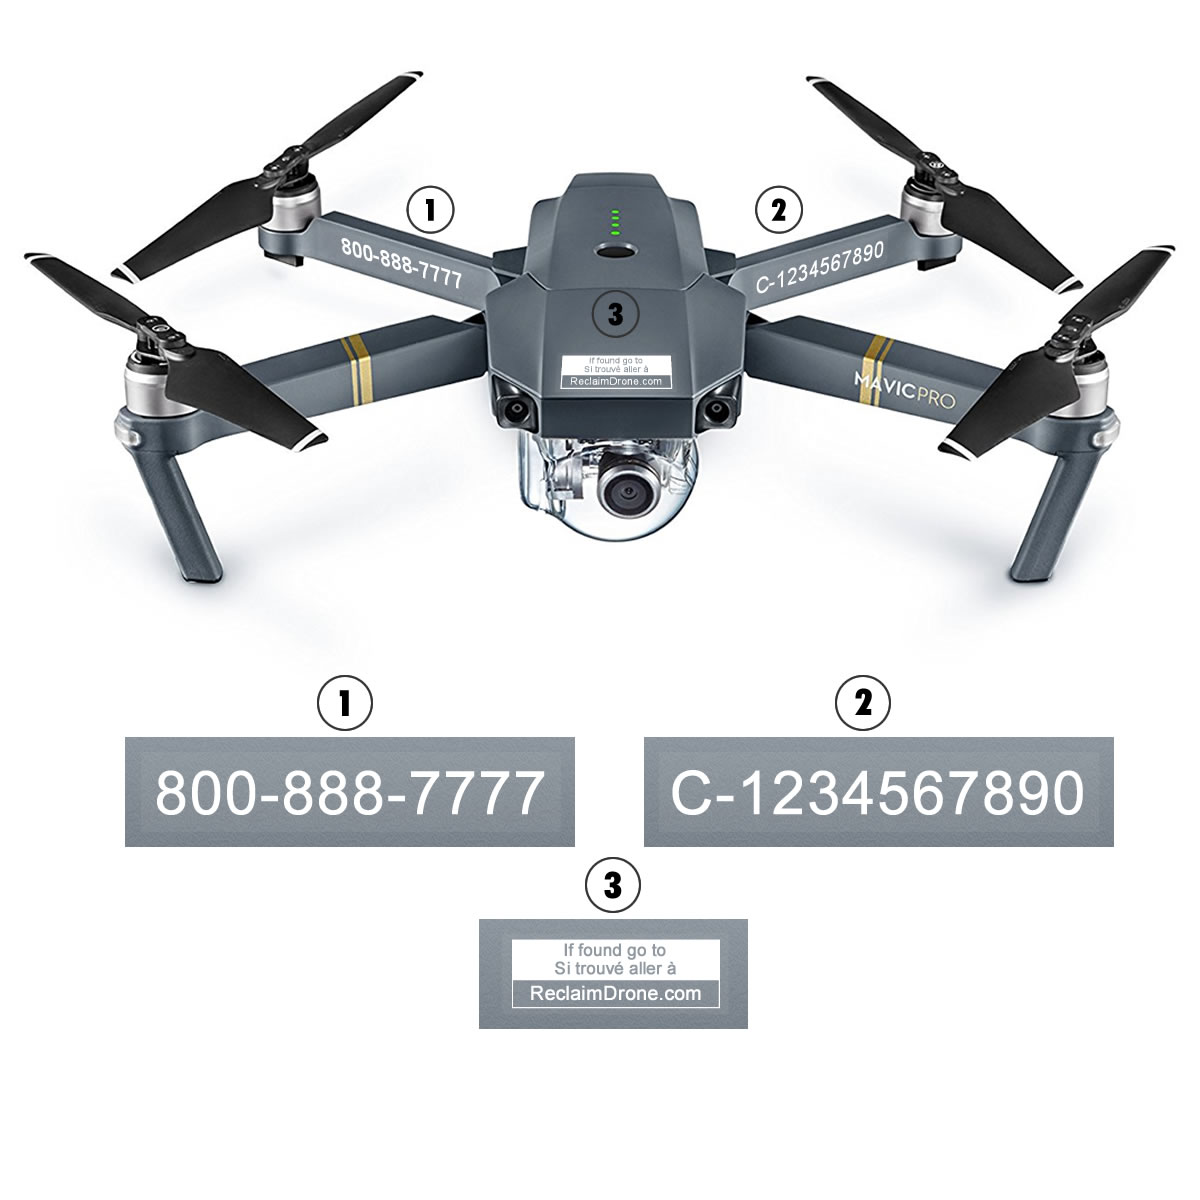 Mavic Pro with TC registration and phone numbers labels from reclaimdrone.com